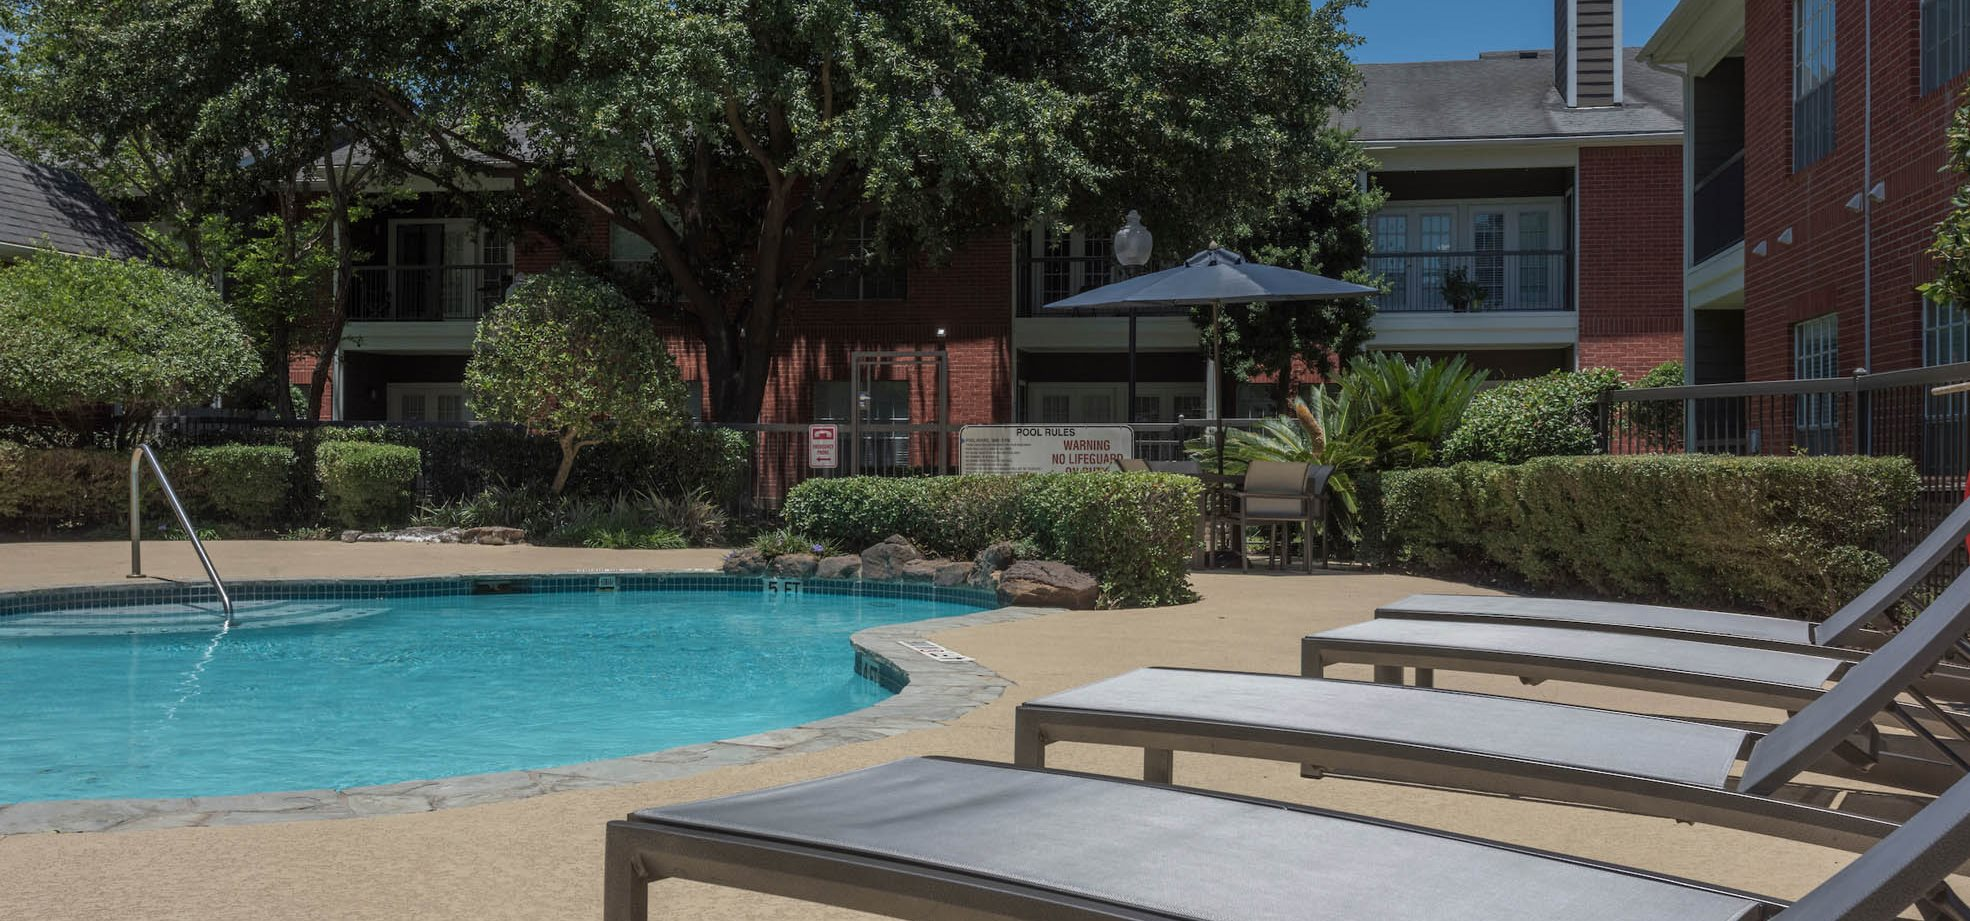 Easton Village Apartments Houston Tx Reviews